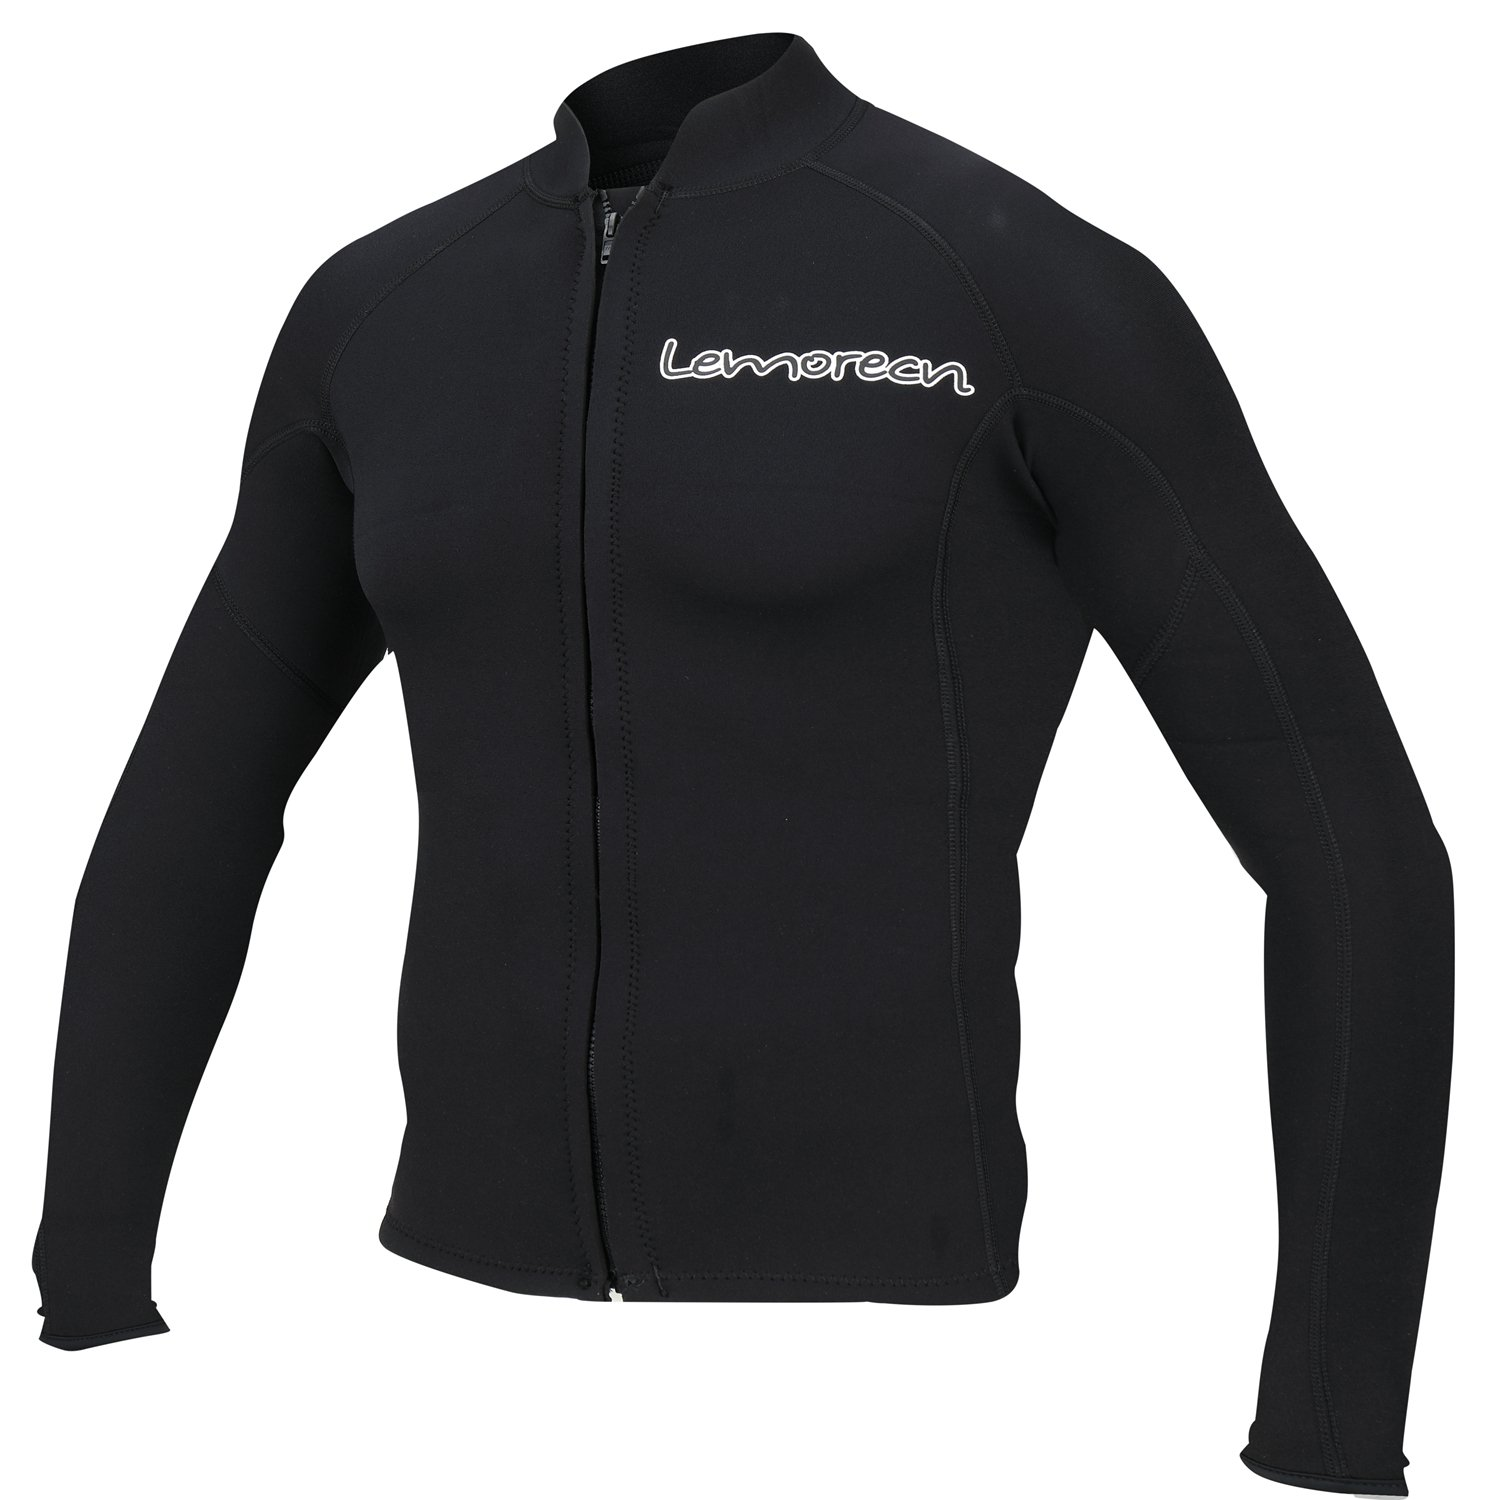 Lemorecn Men's 2mm Wetsuits Jacket Long Sleeve Neoprene Wetsuits Top(2021blackXL) by Lemorecn